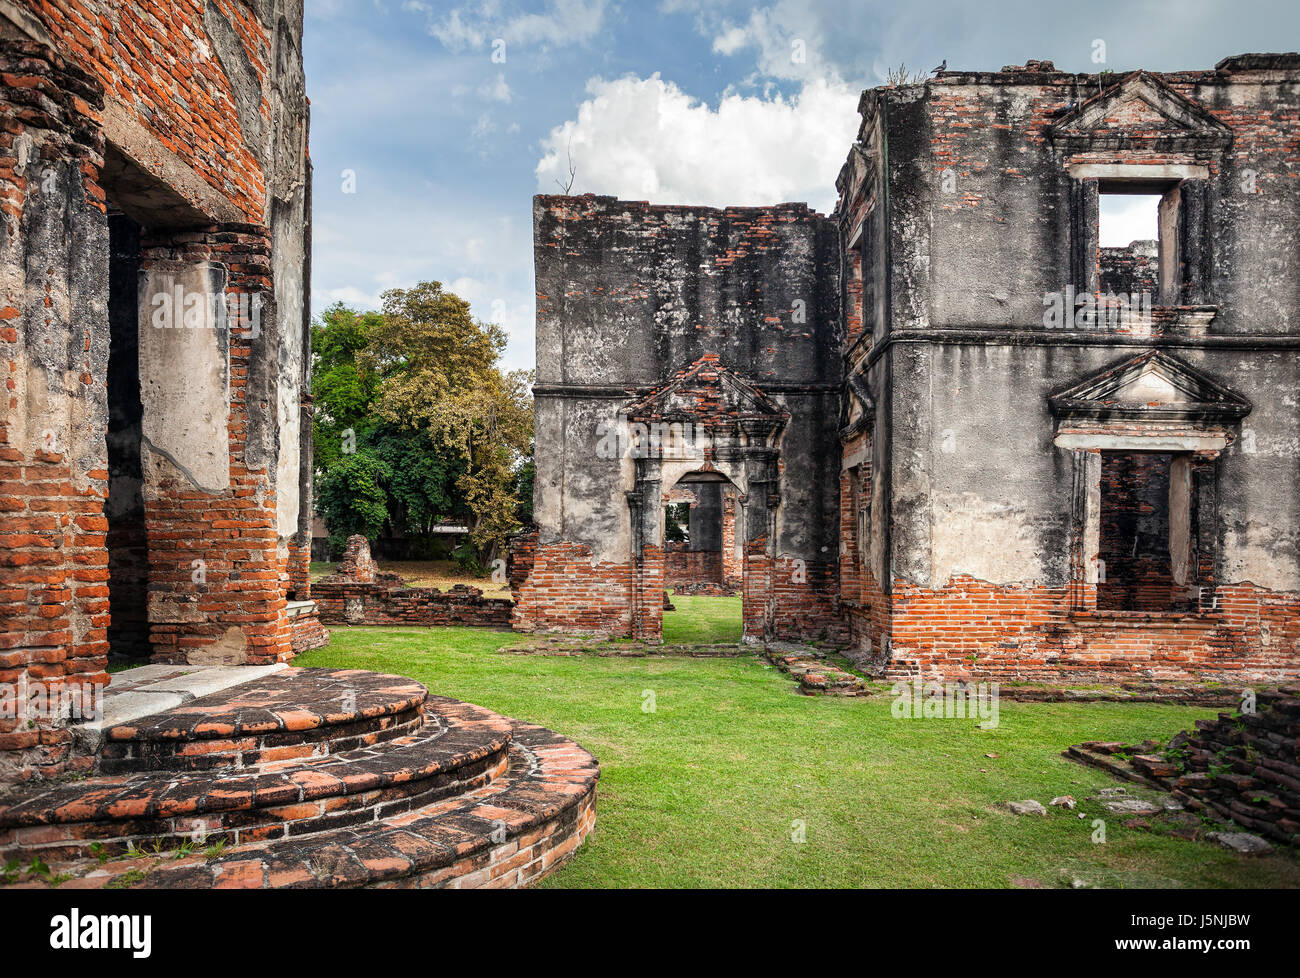 Ancient ruined Temple in Lopburi at overcast sky, Thailand - Stock Image